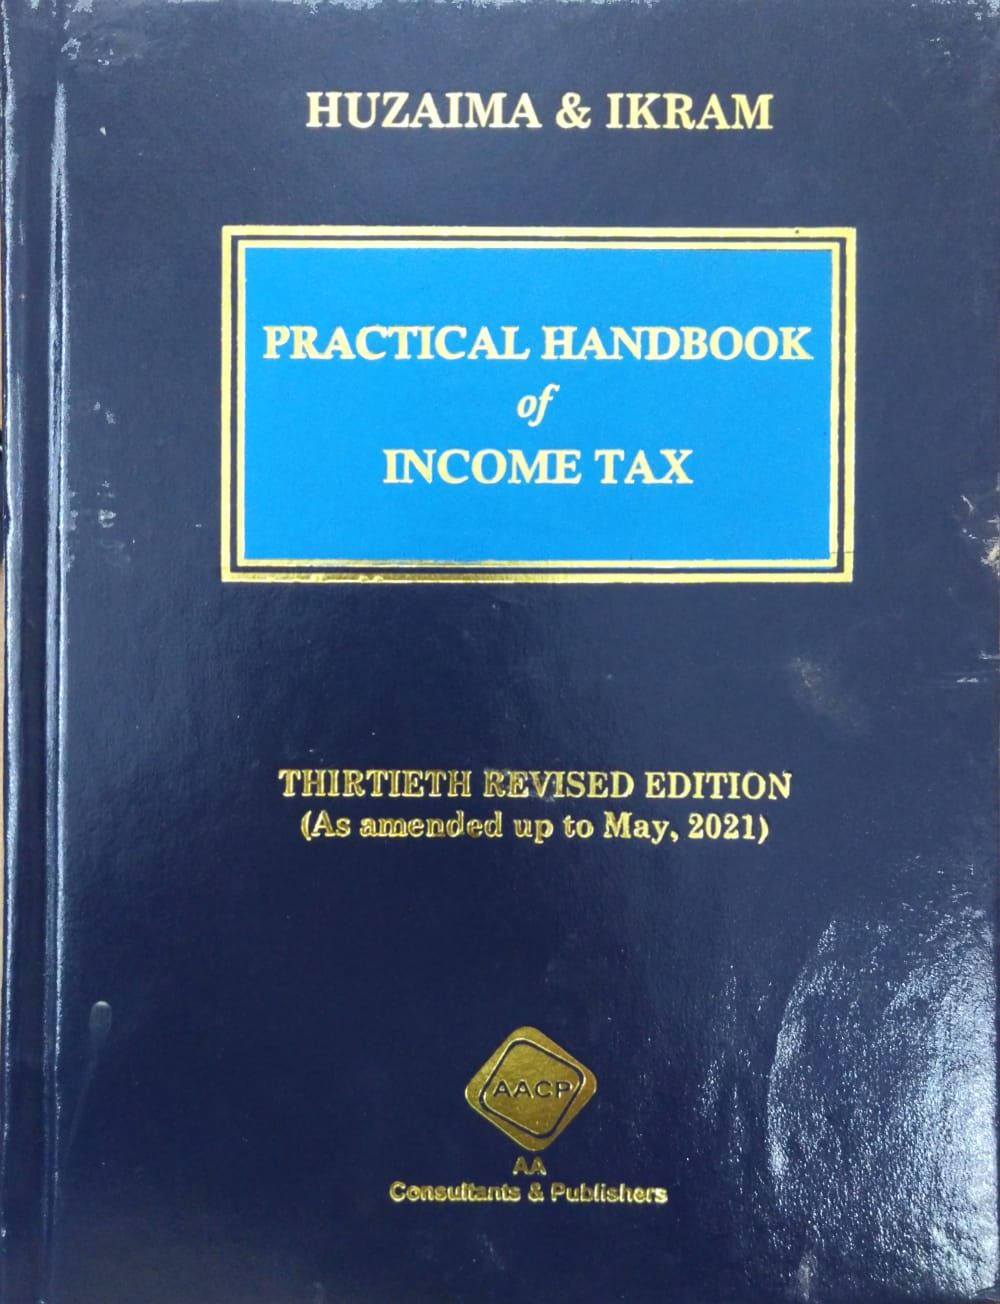 Practical Handbook of Income Tax Thirtieth Revised Edition (As Amended up to May, 2021) 2021-2022